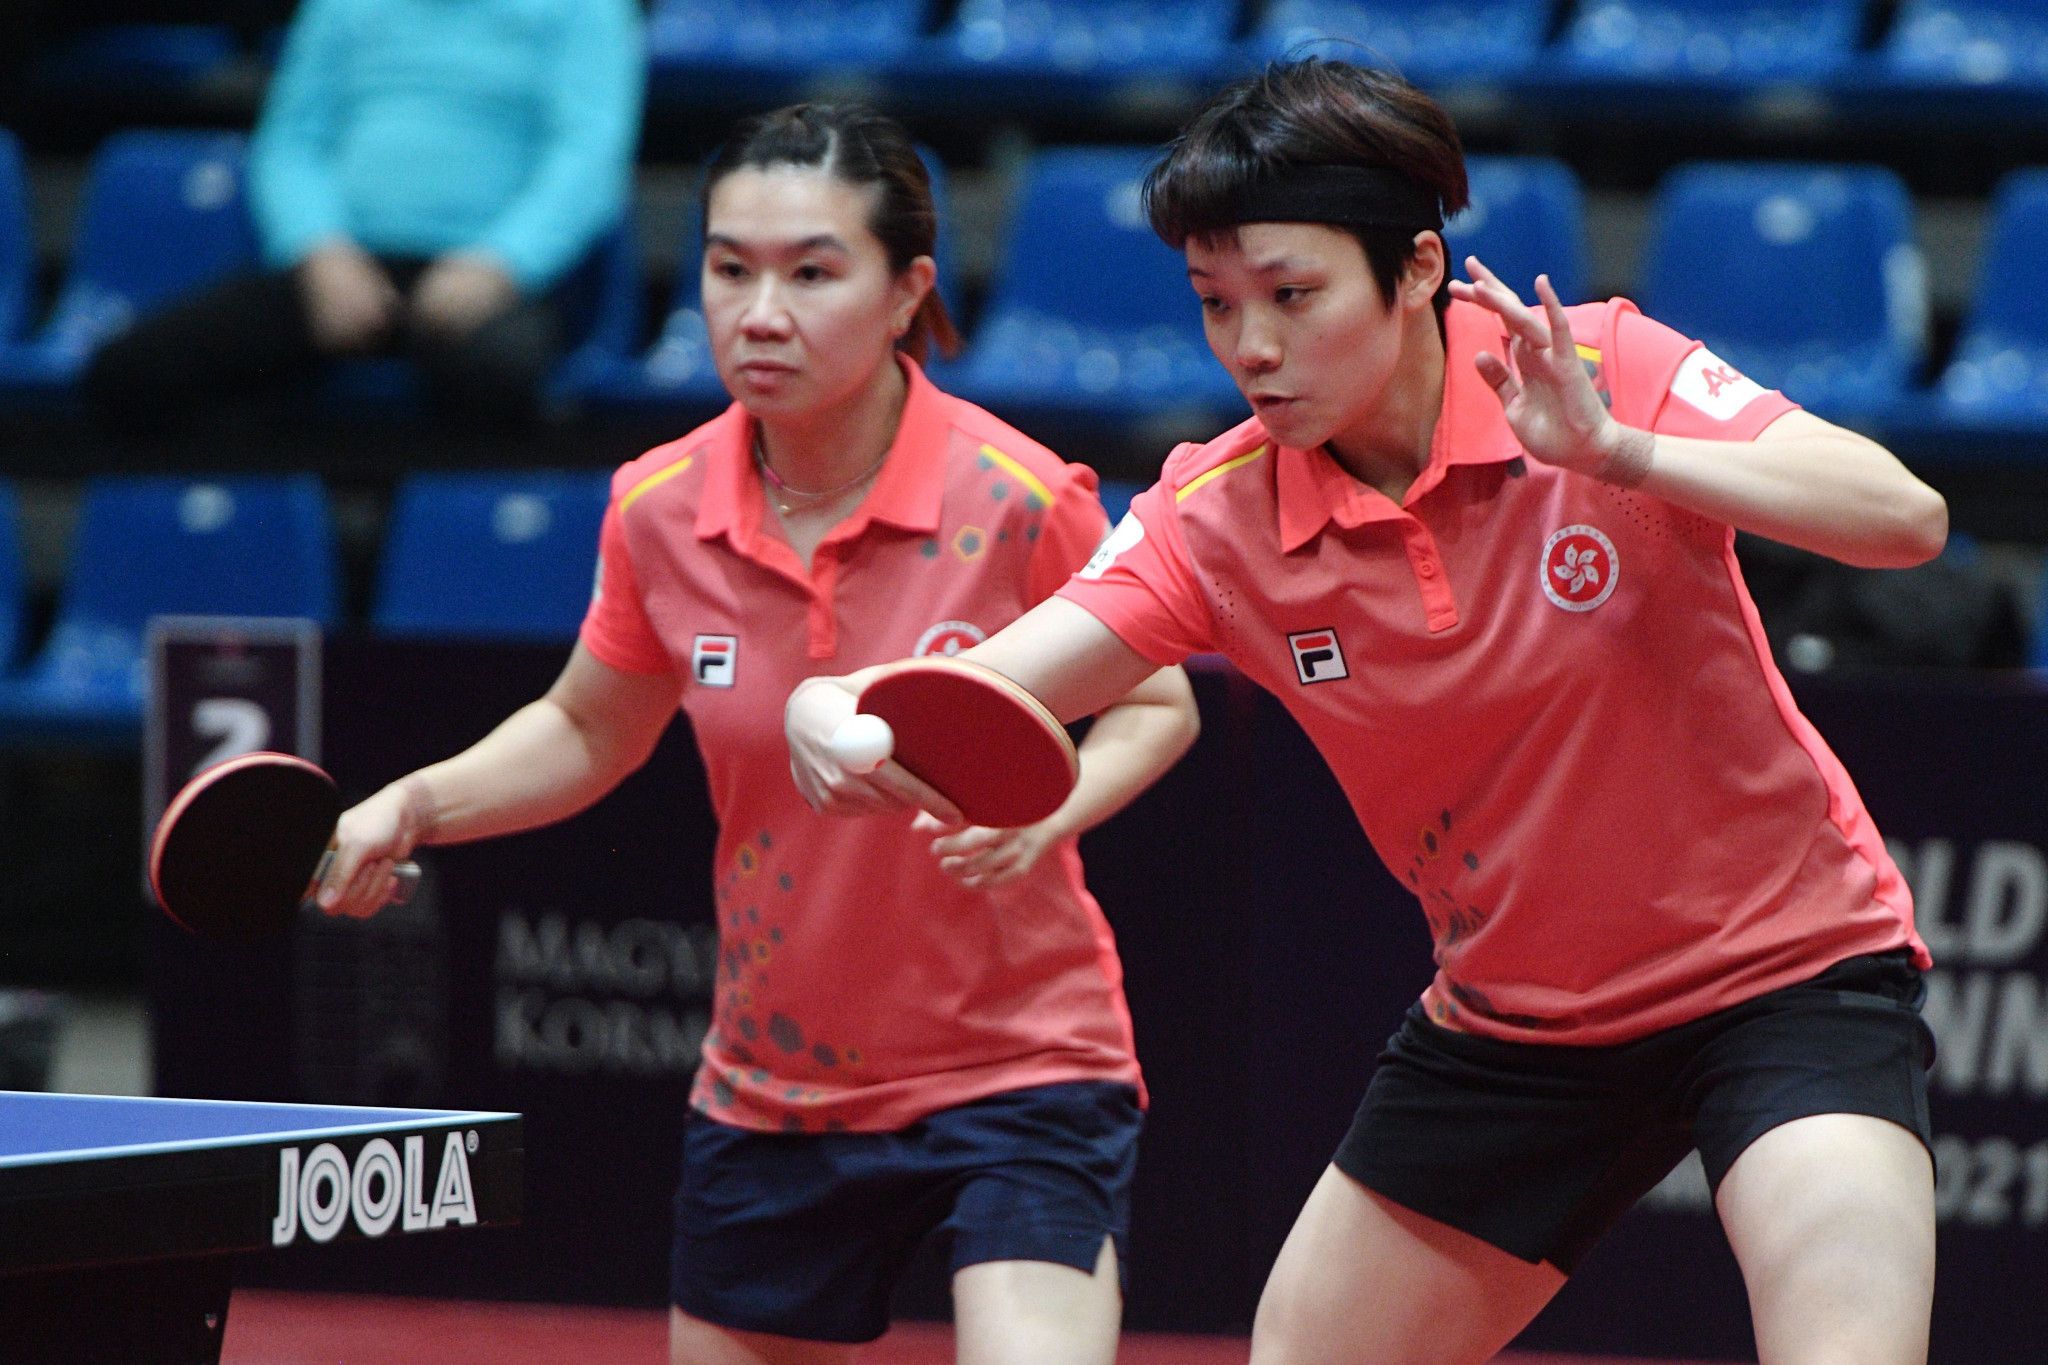 Hong Kong's table tennis team has been withdrawn from the two WTT events in Doha due to safety concerns ©Getty Images